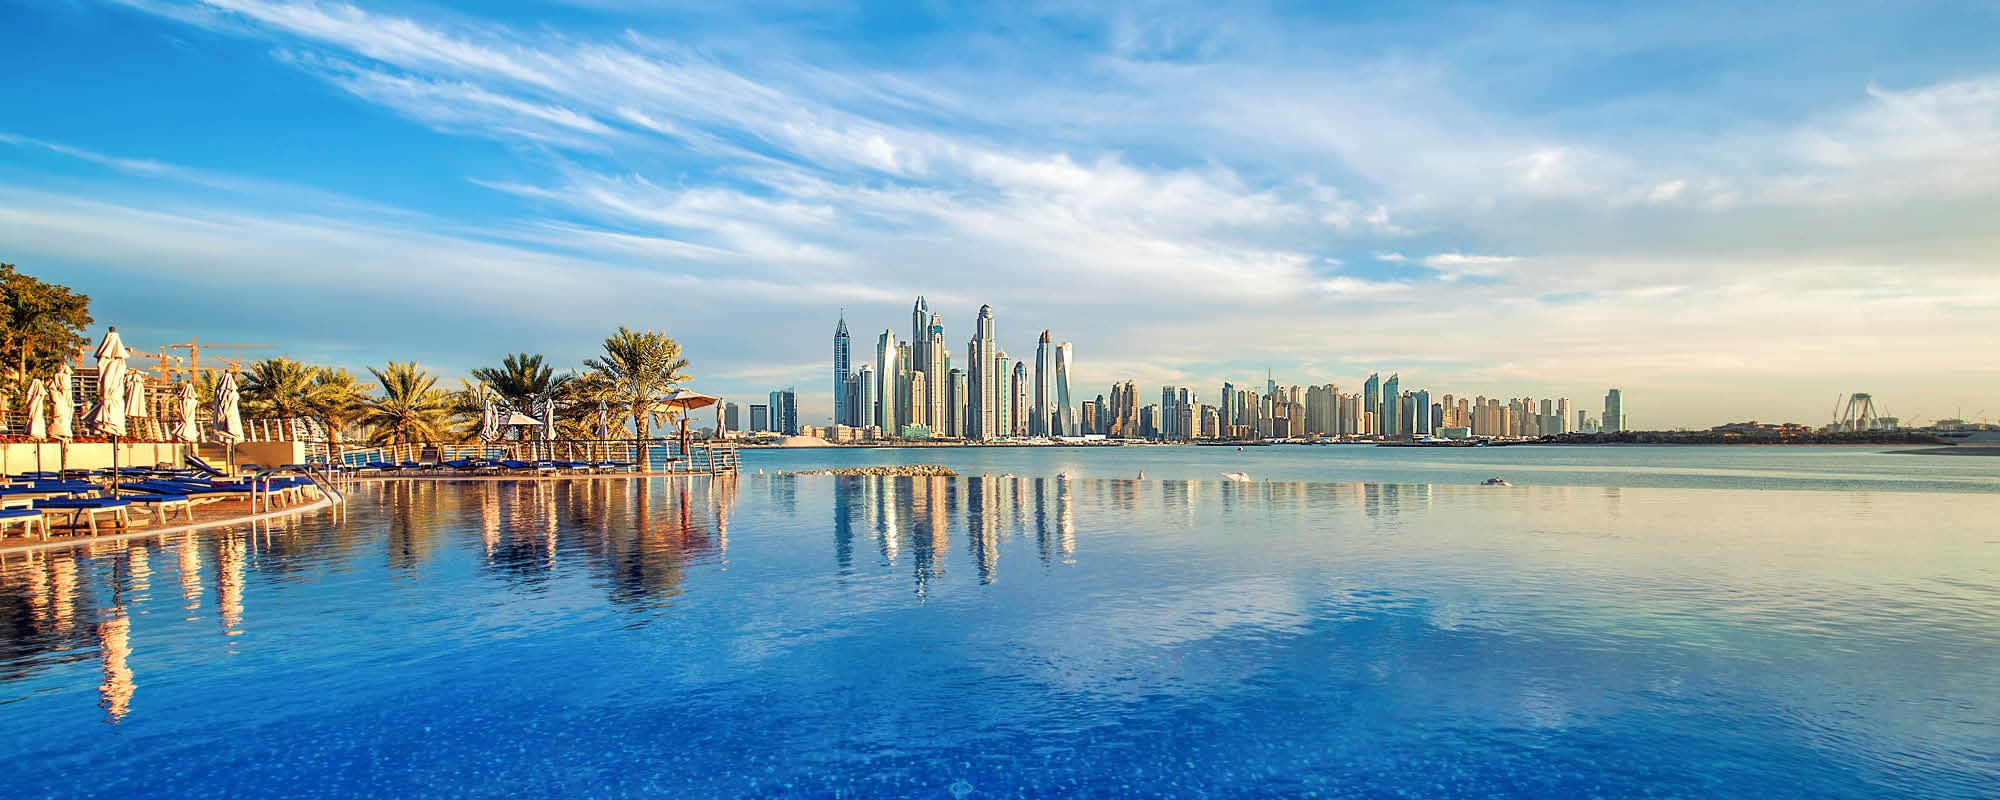 Dubai: A place that feels out of this world